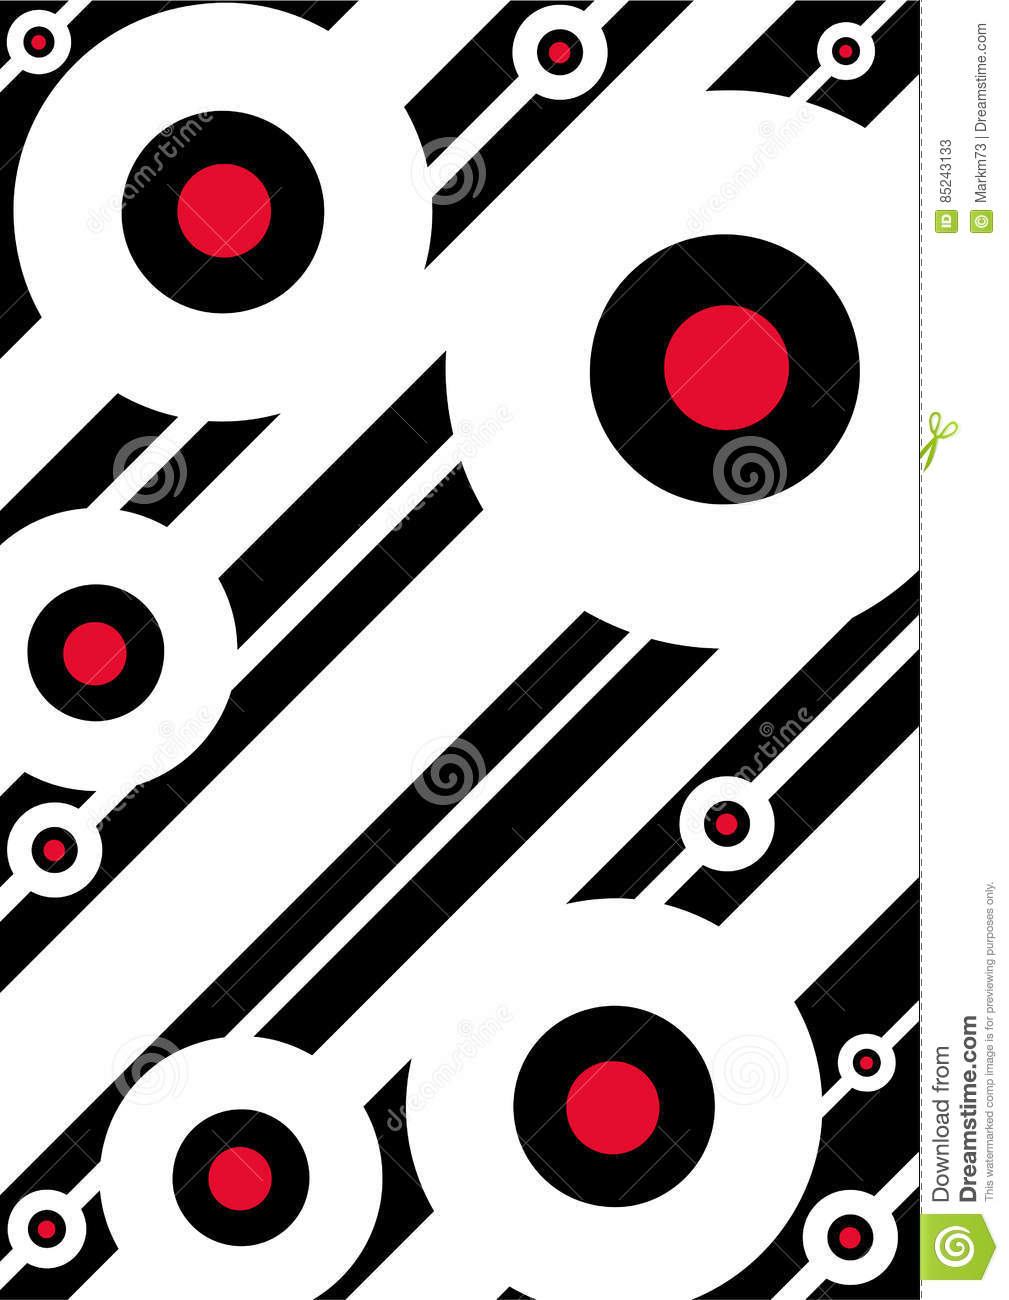 826f76d977a Mod Target Circle Pattern stock vector. Illustration of pattern ...